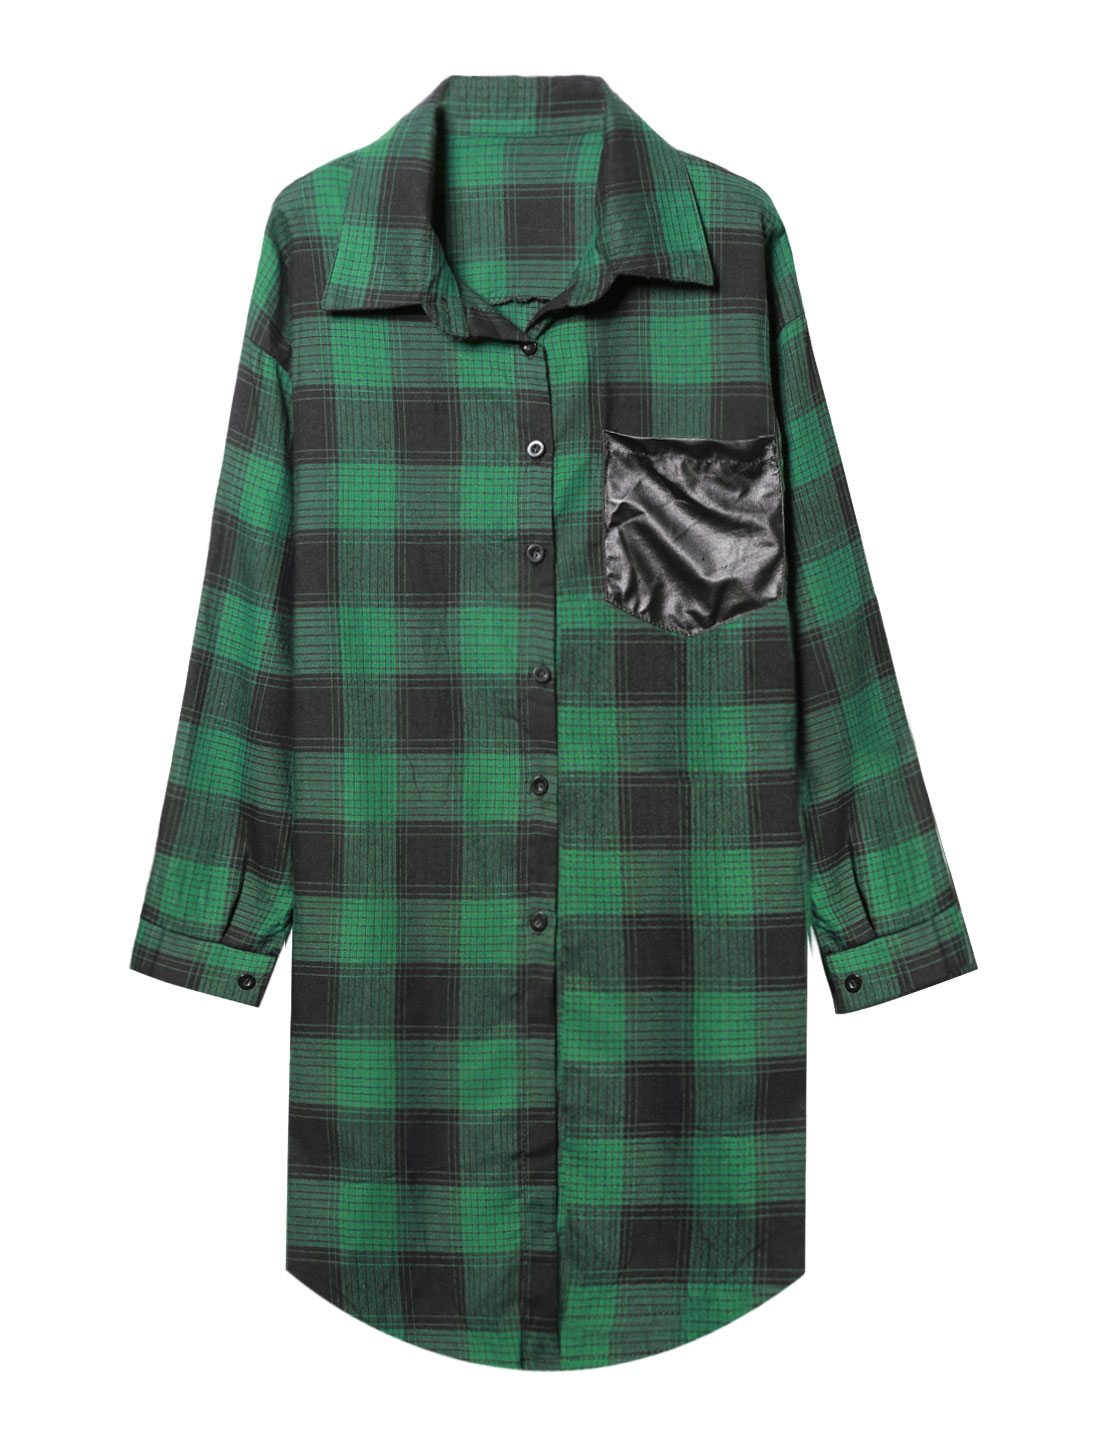 Women Long Sleeves Button Closed Plaids Tunic Casual Shirt Green S